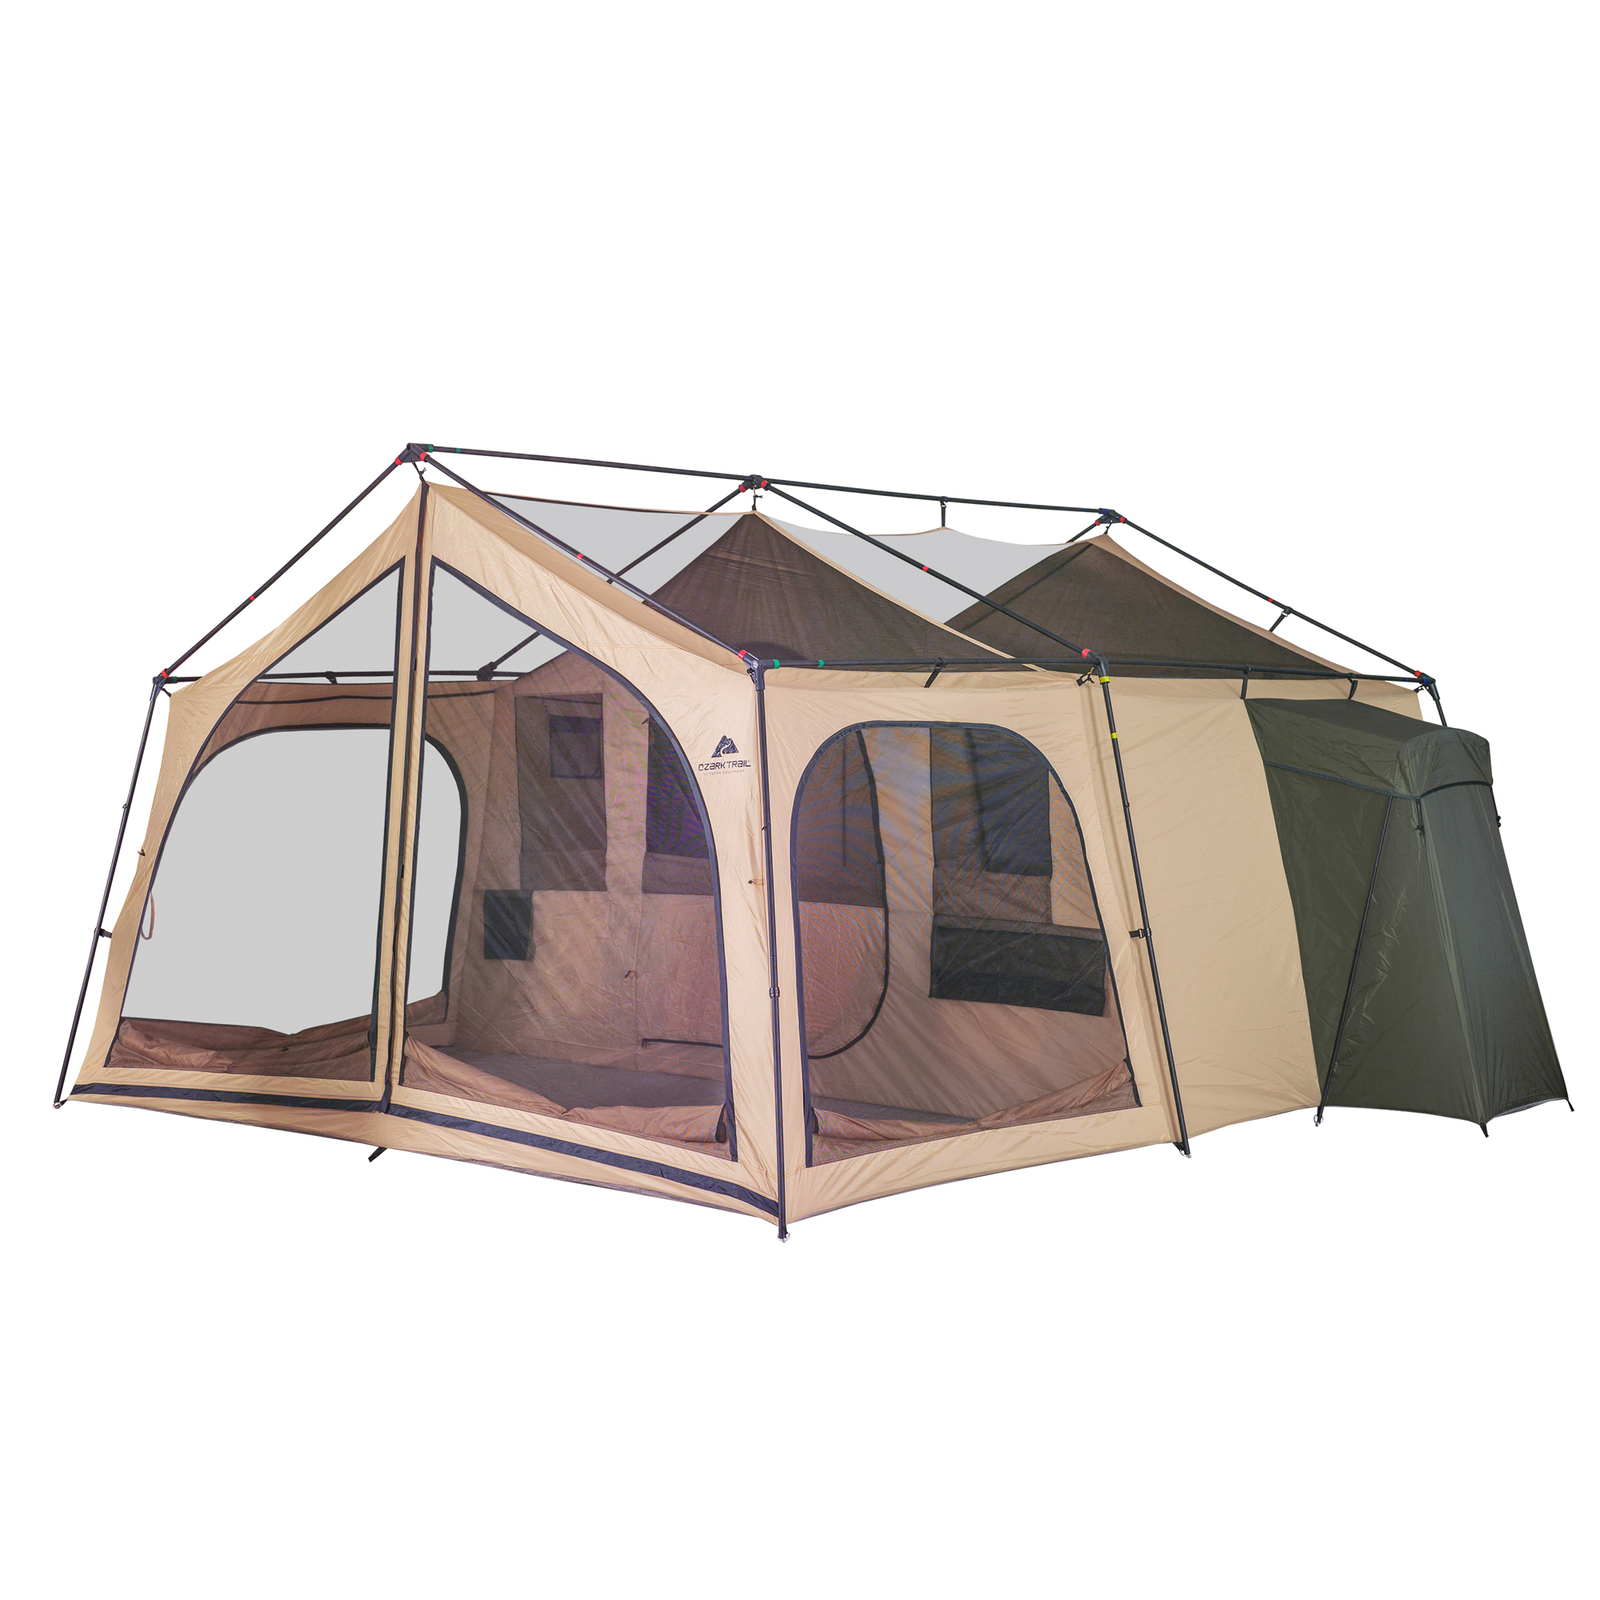 Large Camping Tent Outdoor Picnic Travel Family Cabin